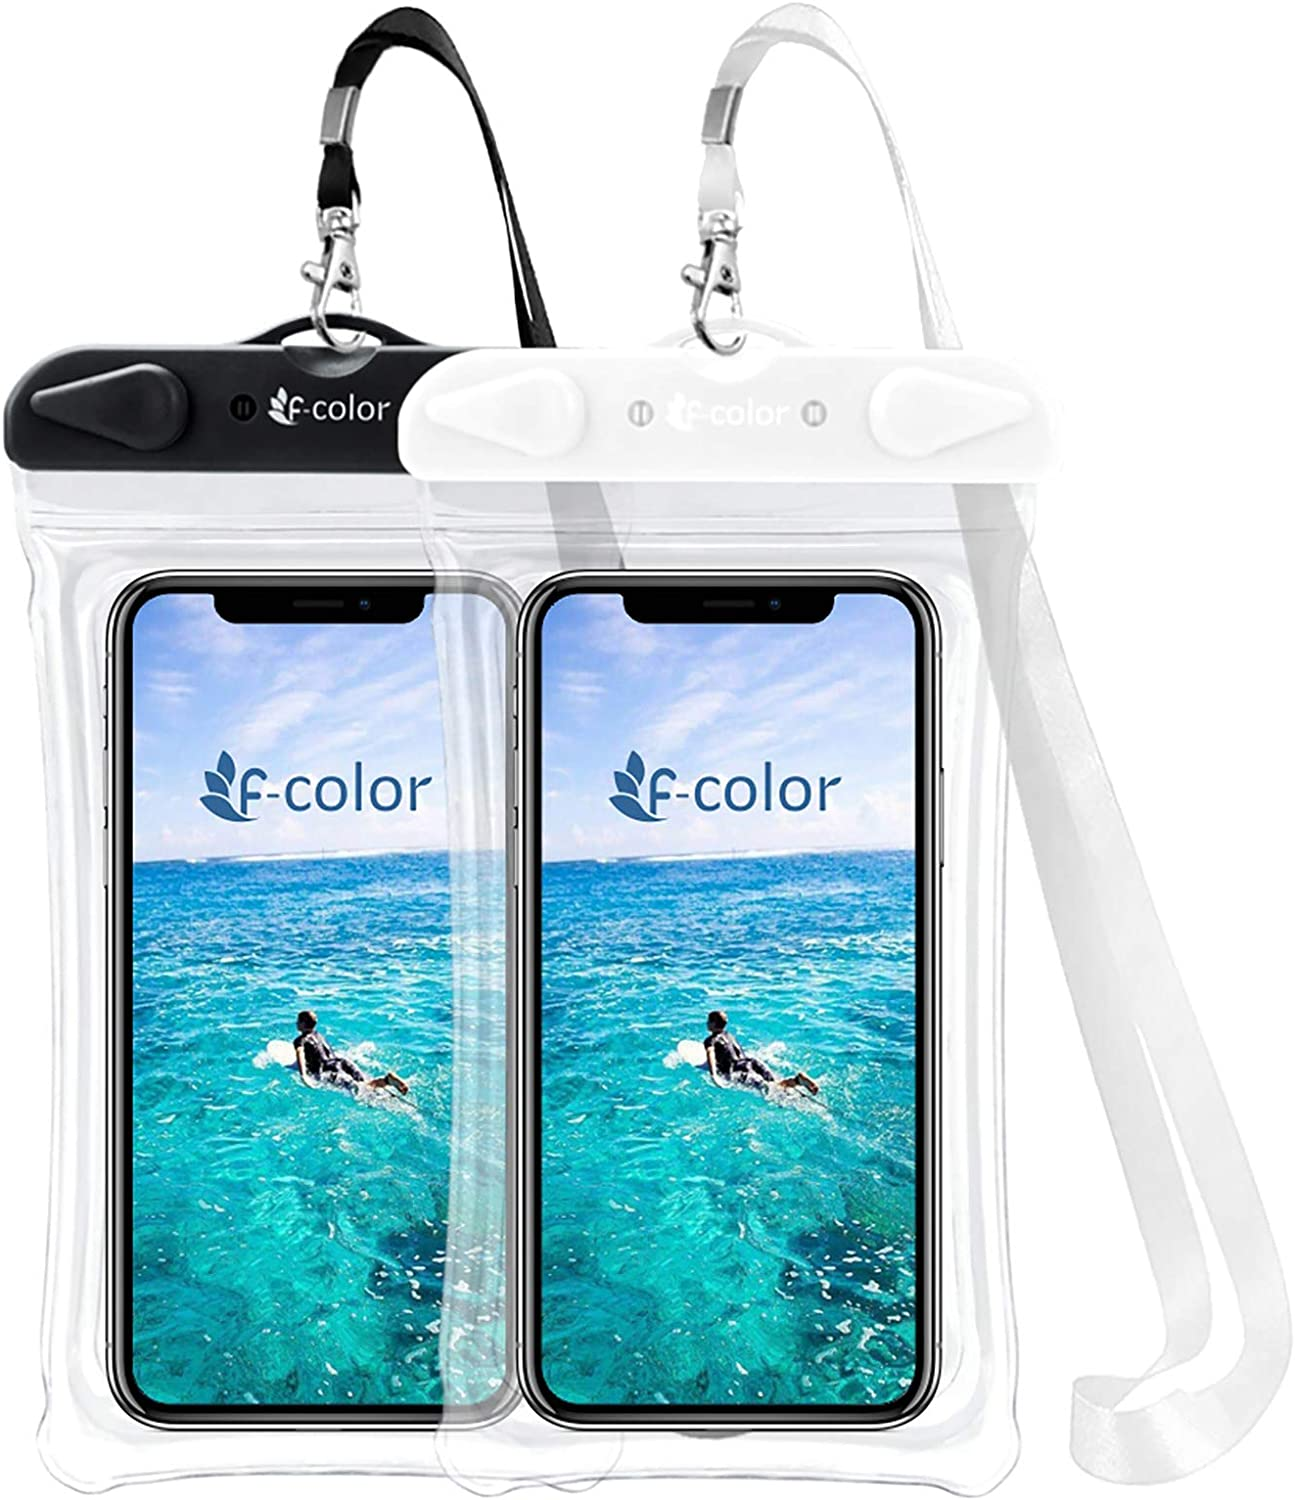 4 Pack Compatible with iPhone Xs Max XR 8 7 6S Plus Galaxy S8 S7 Edge S6 Up to 7 inch Universal Waterproof Case PVC Dry Bag for Swimming Boating Skiing Rafting F-color Waterproof Phone Pouch